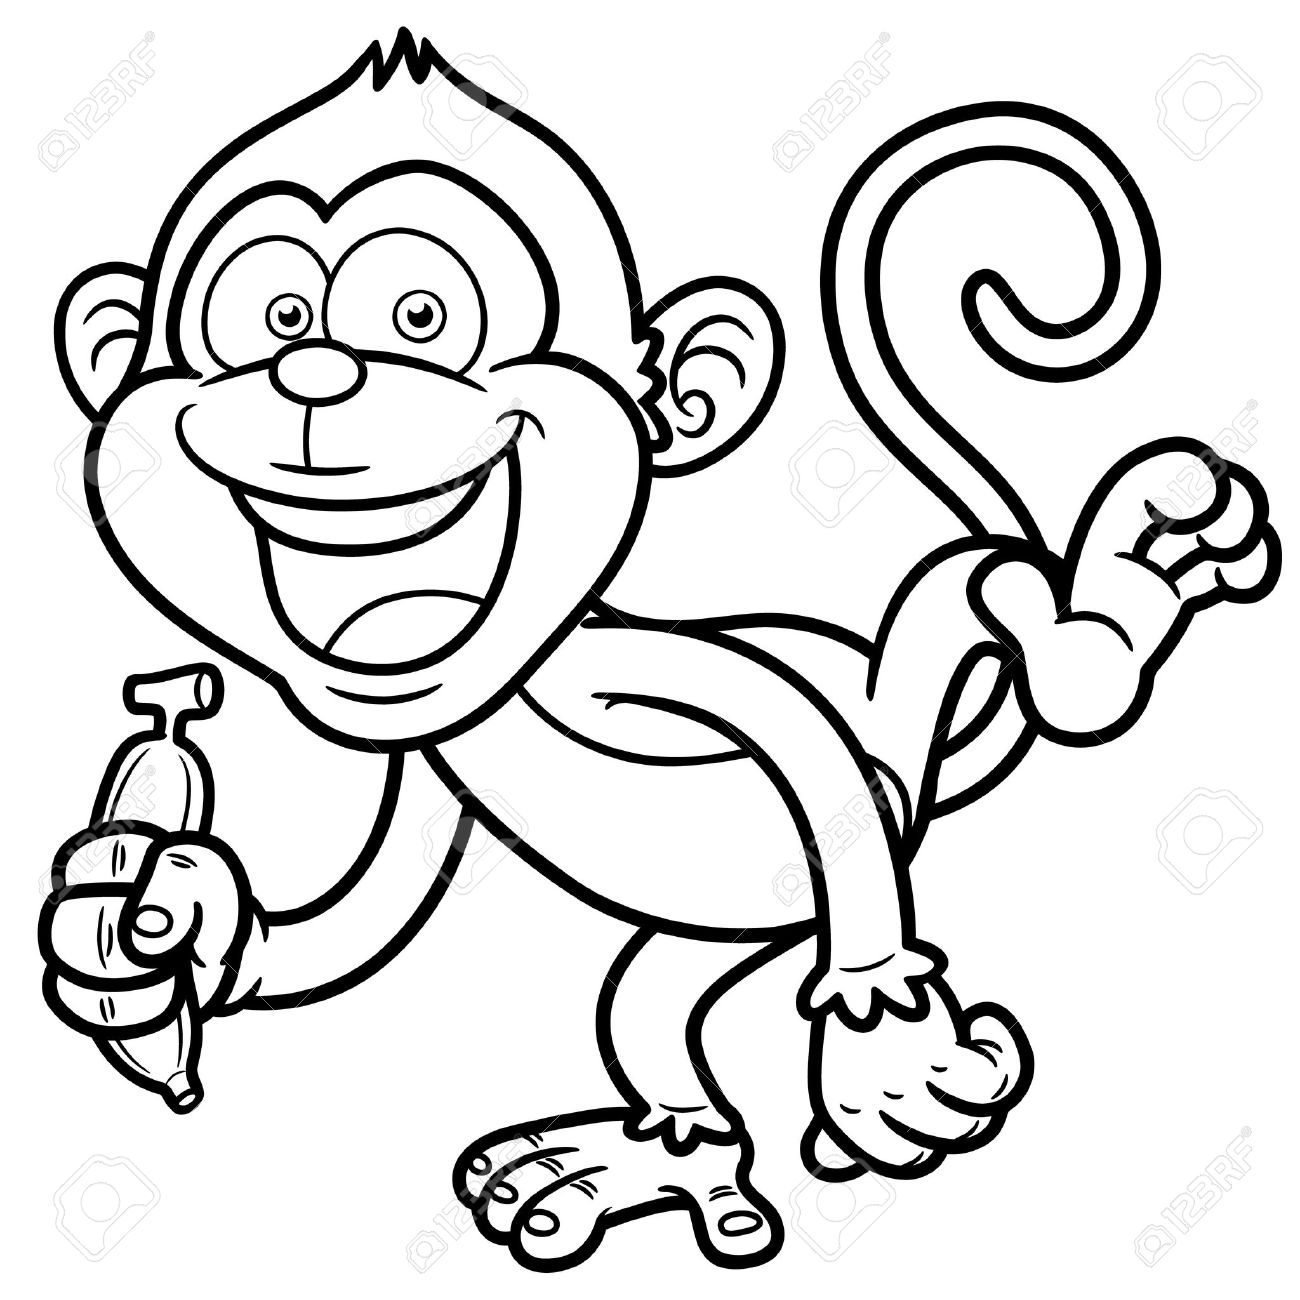 Monkey Outline Drawing At Getdrawings